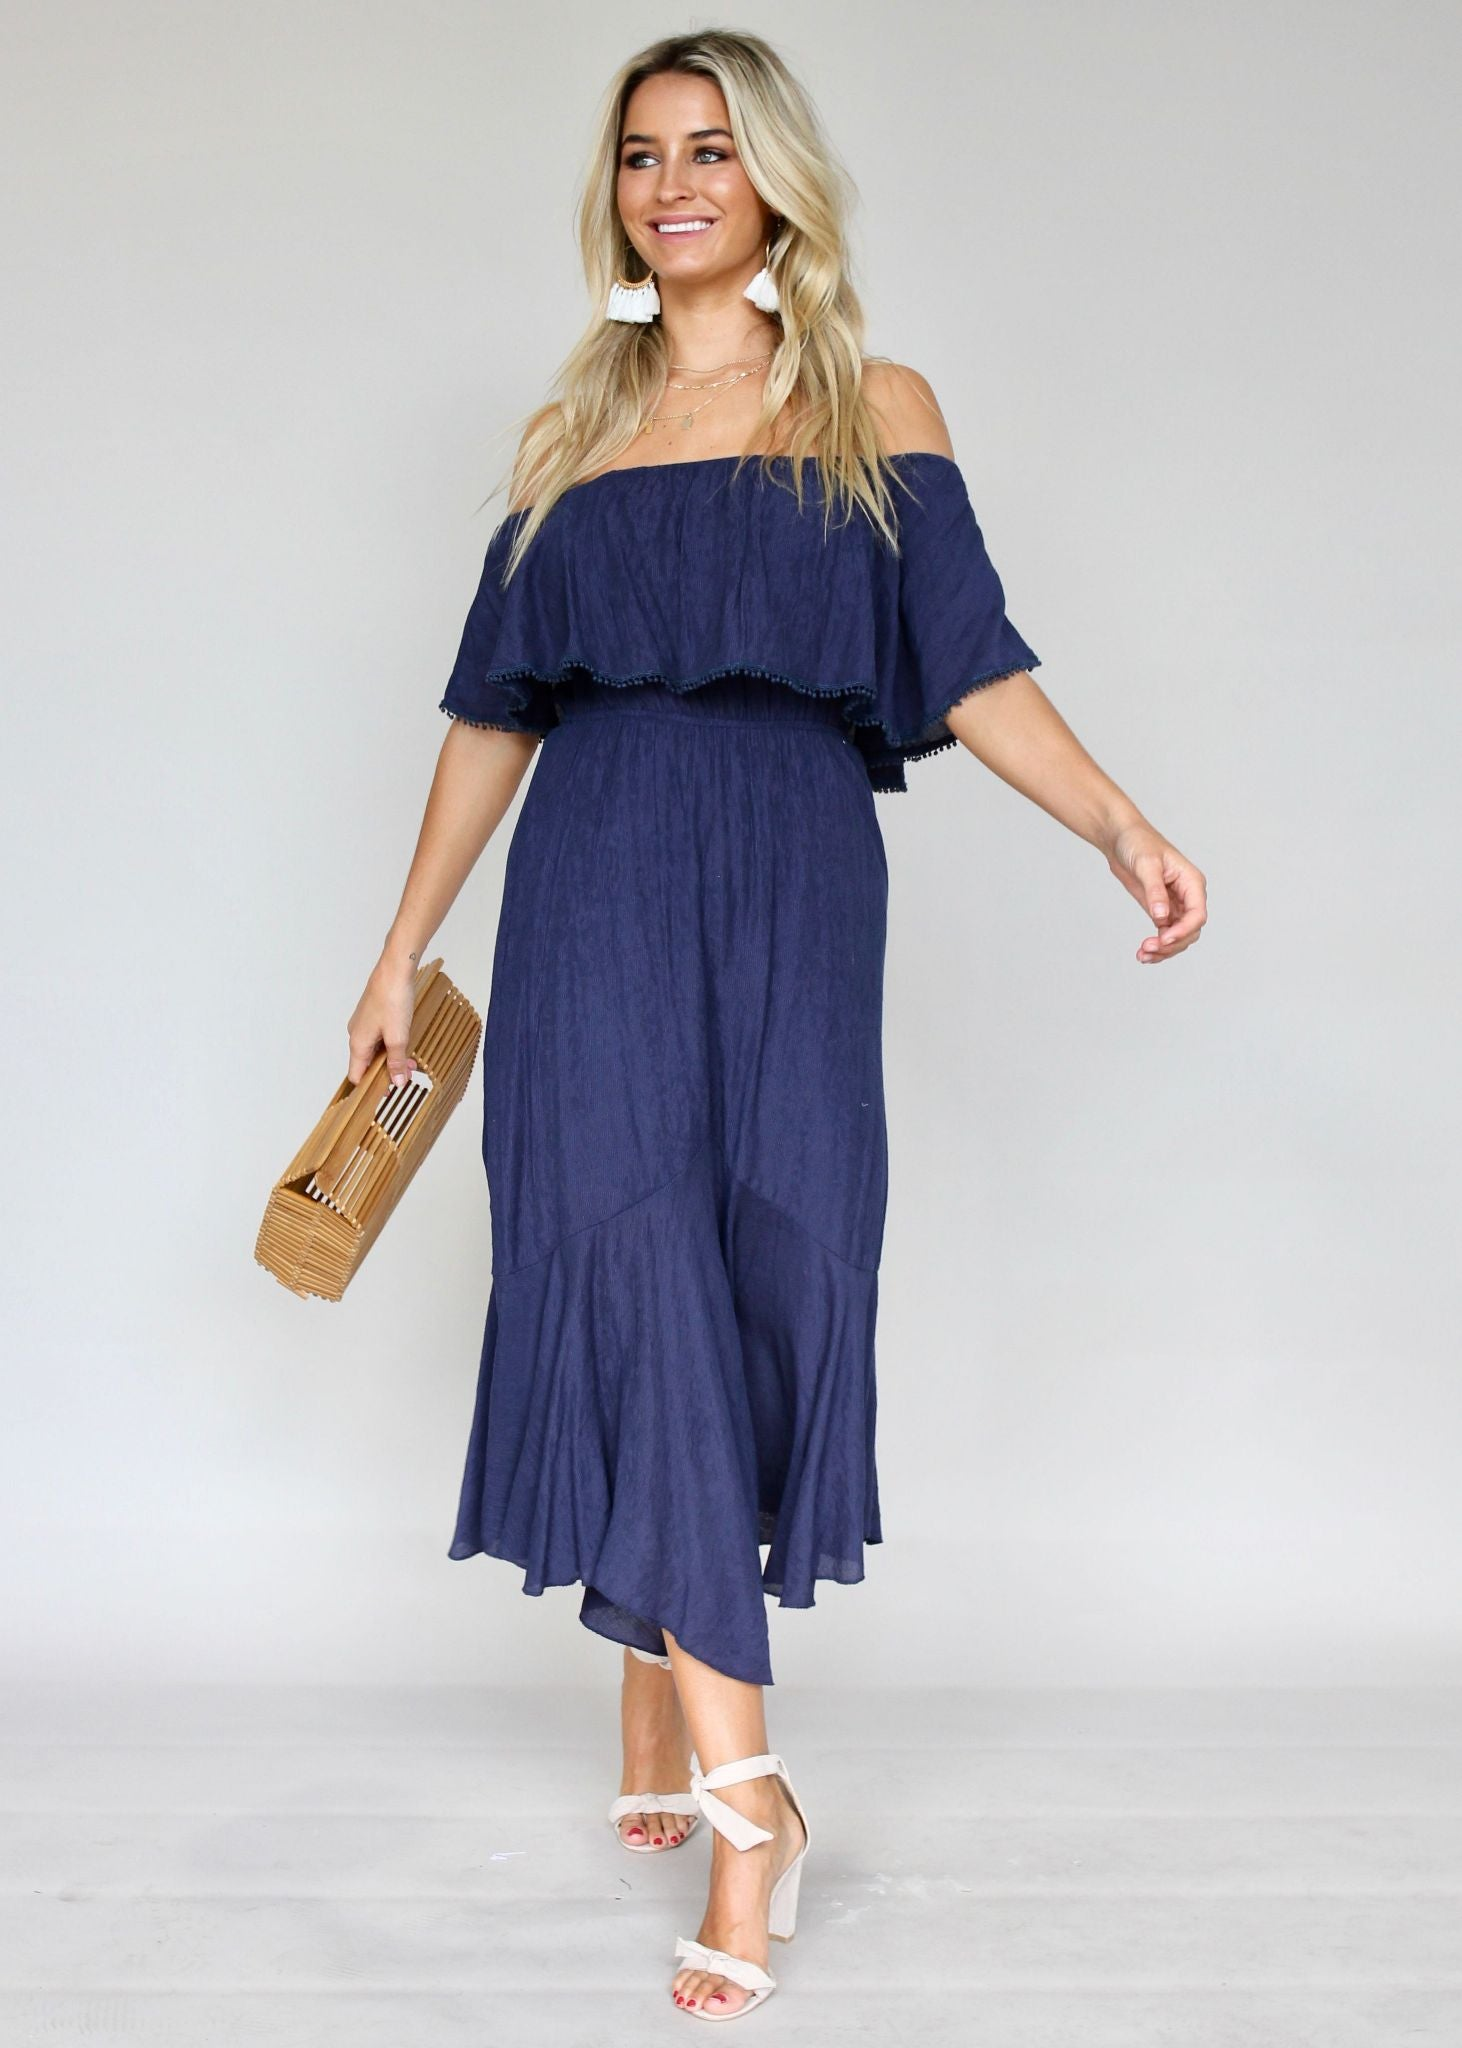 Hampton Summer Dress - Navy